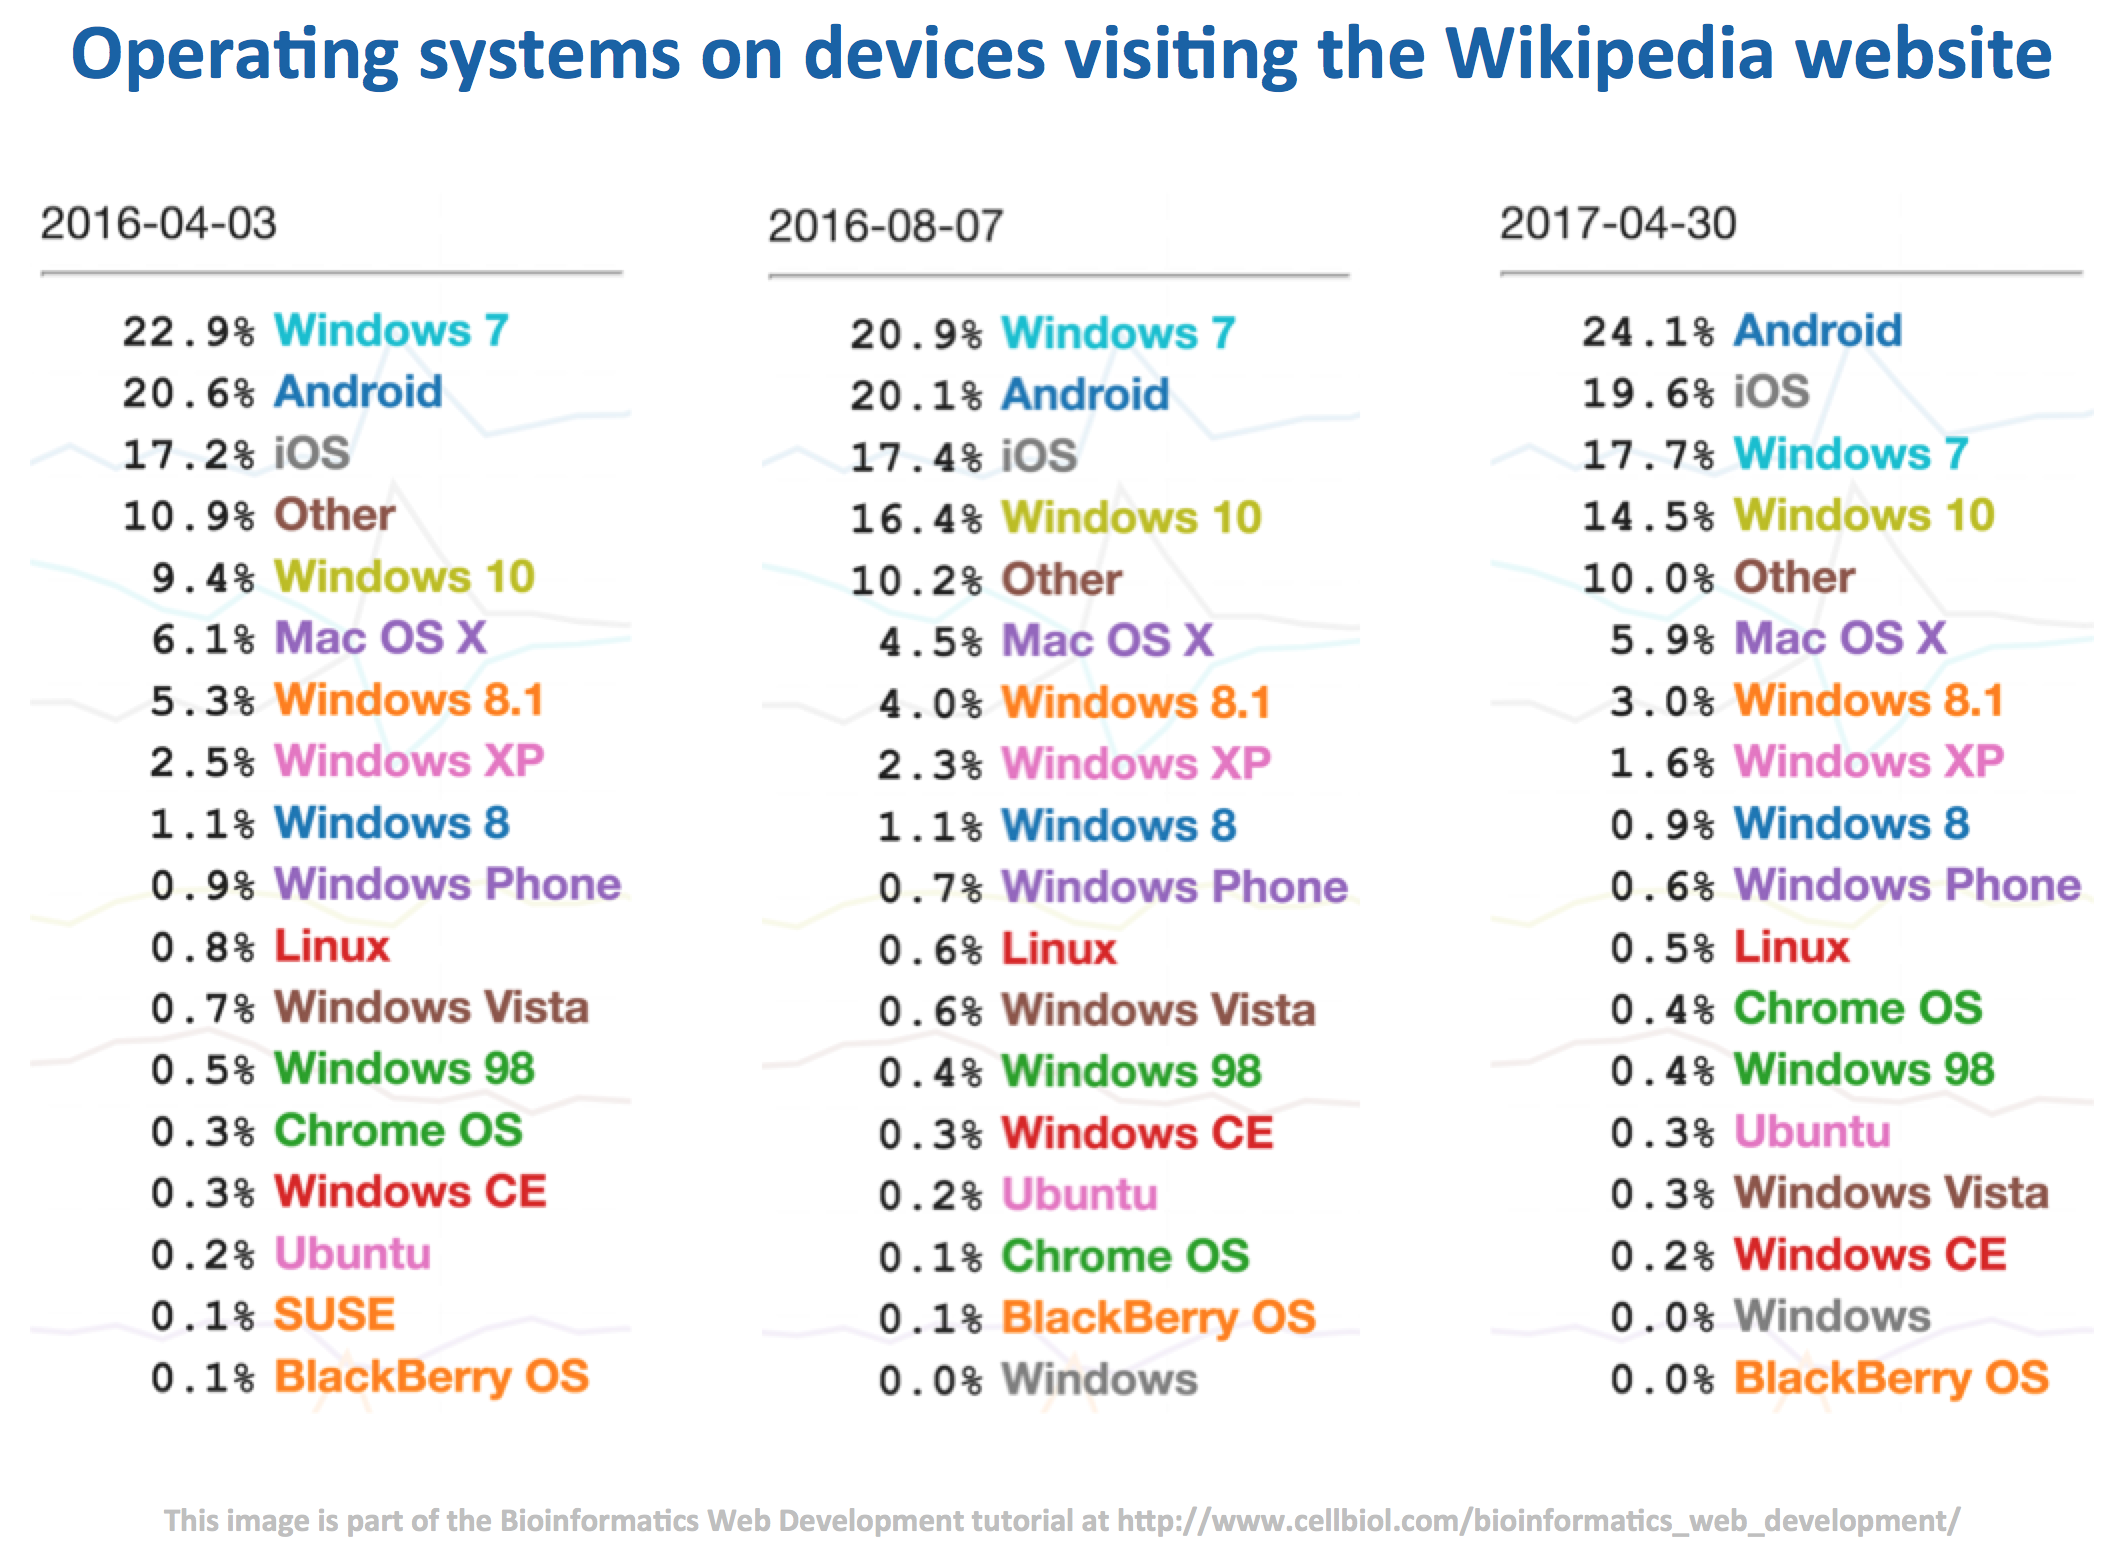 Operating systems of devices visiting the Wikipedia website from April 2016 to April 2017.